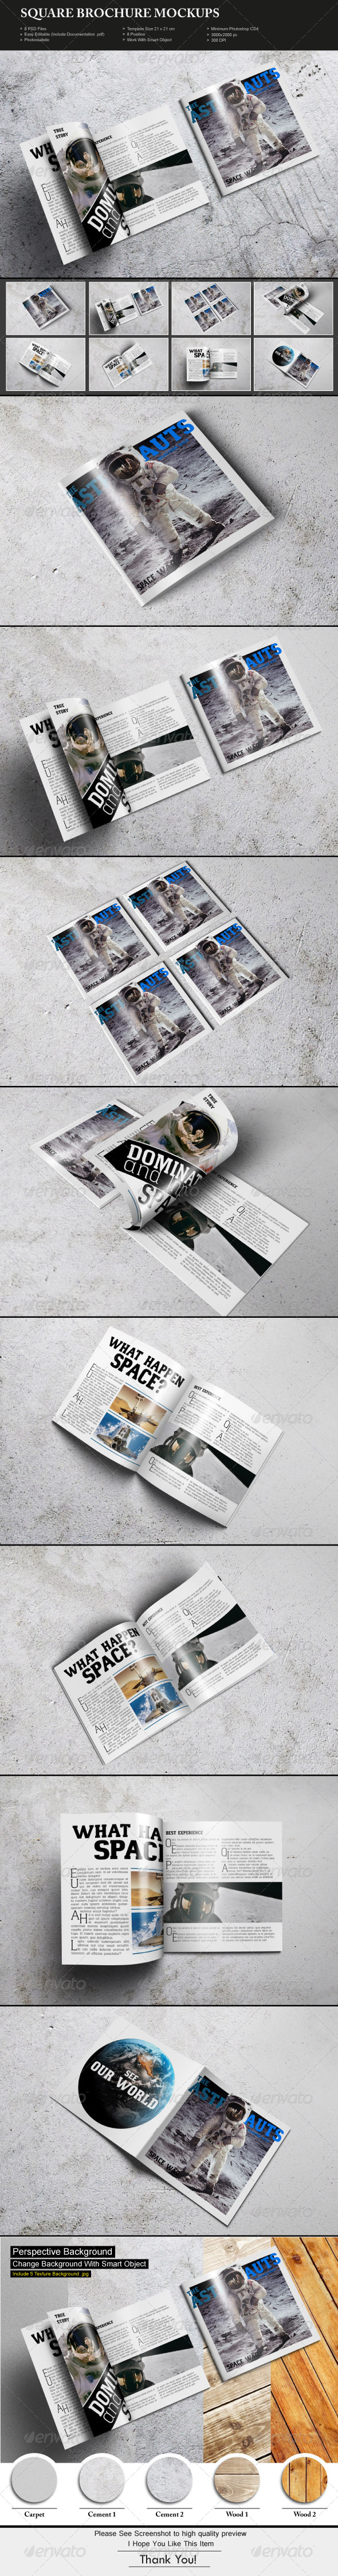 GraphicRiver Square Brochure Mockups 7603945